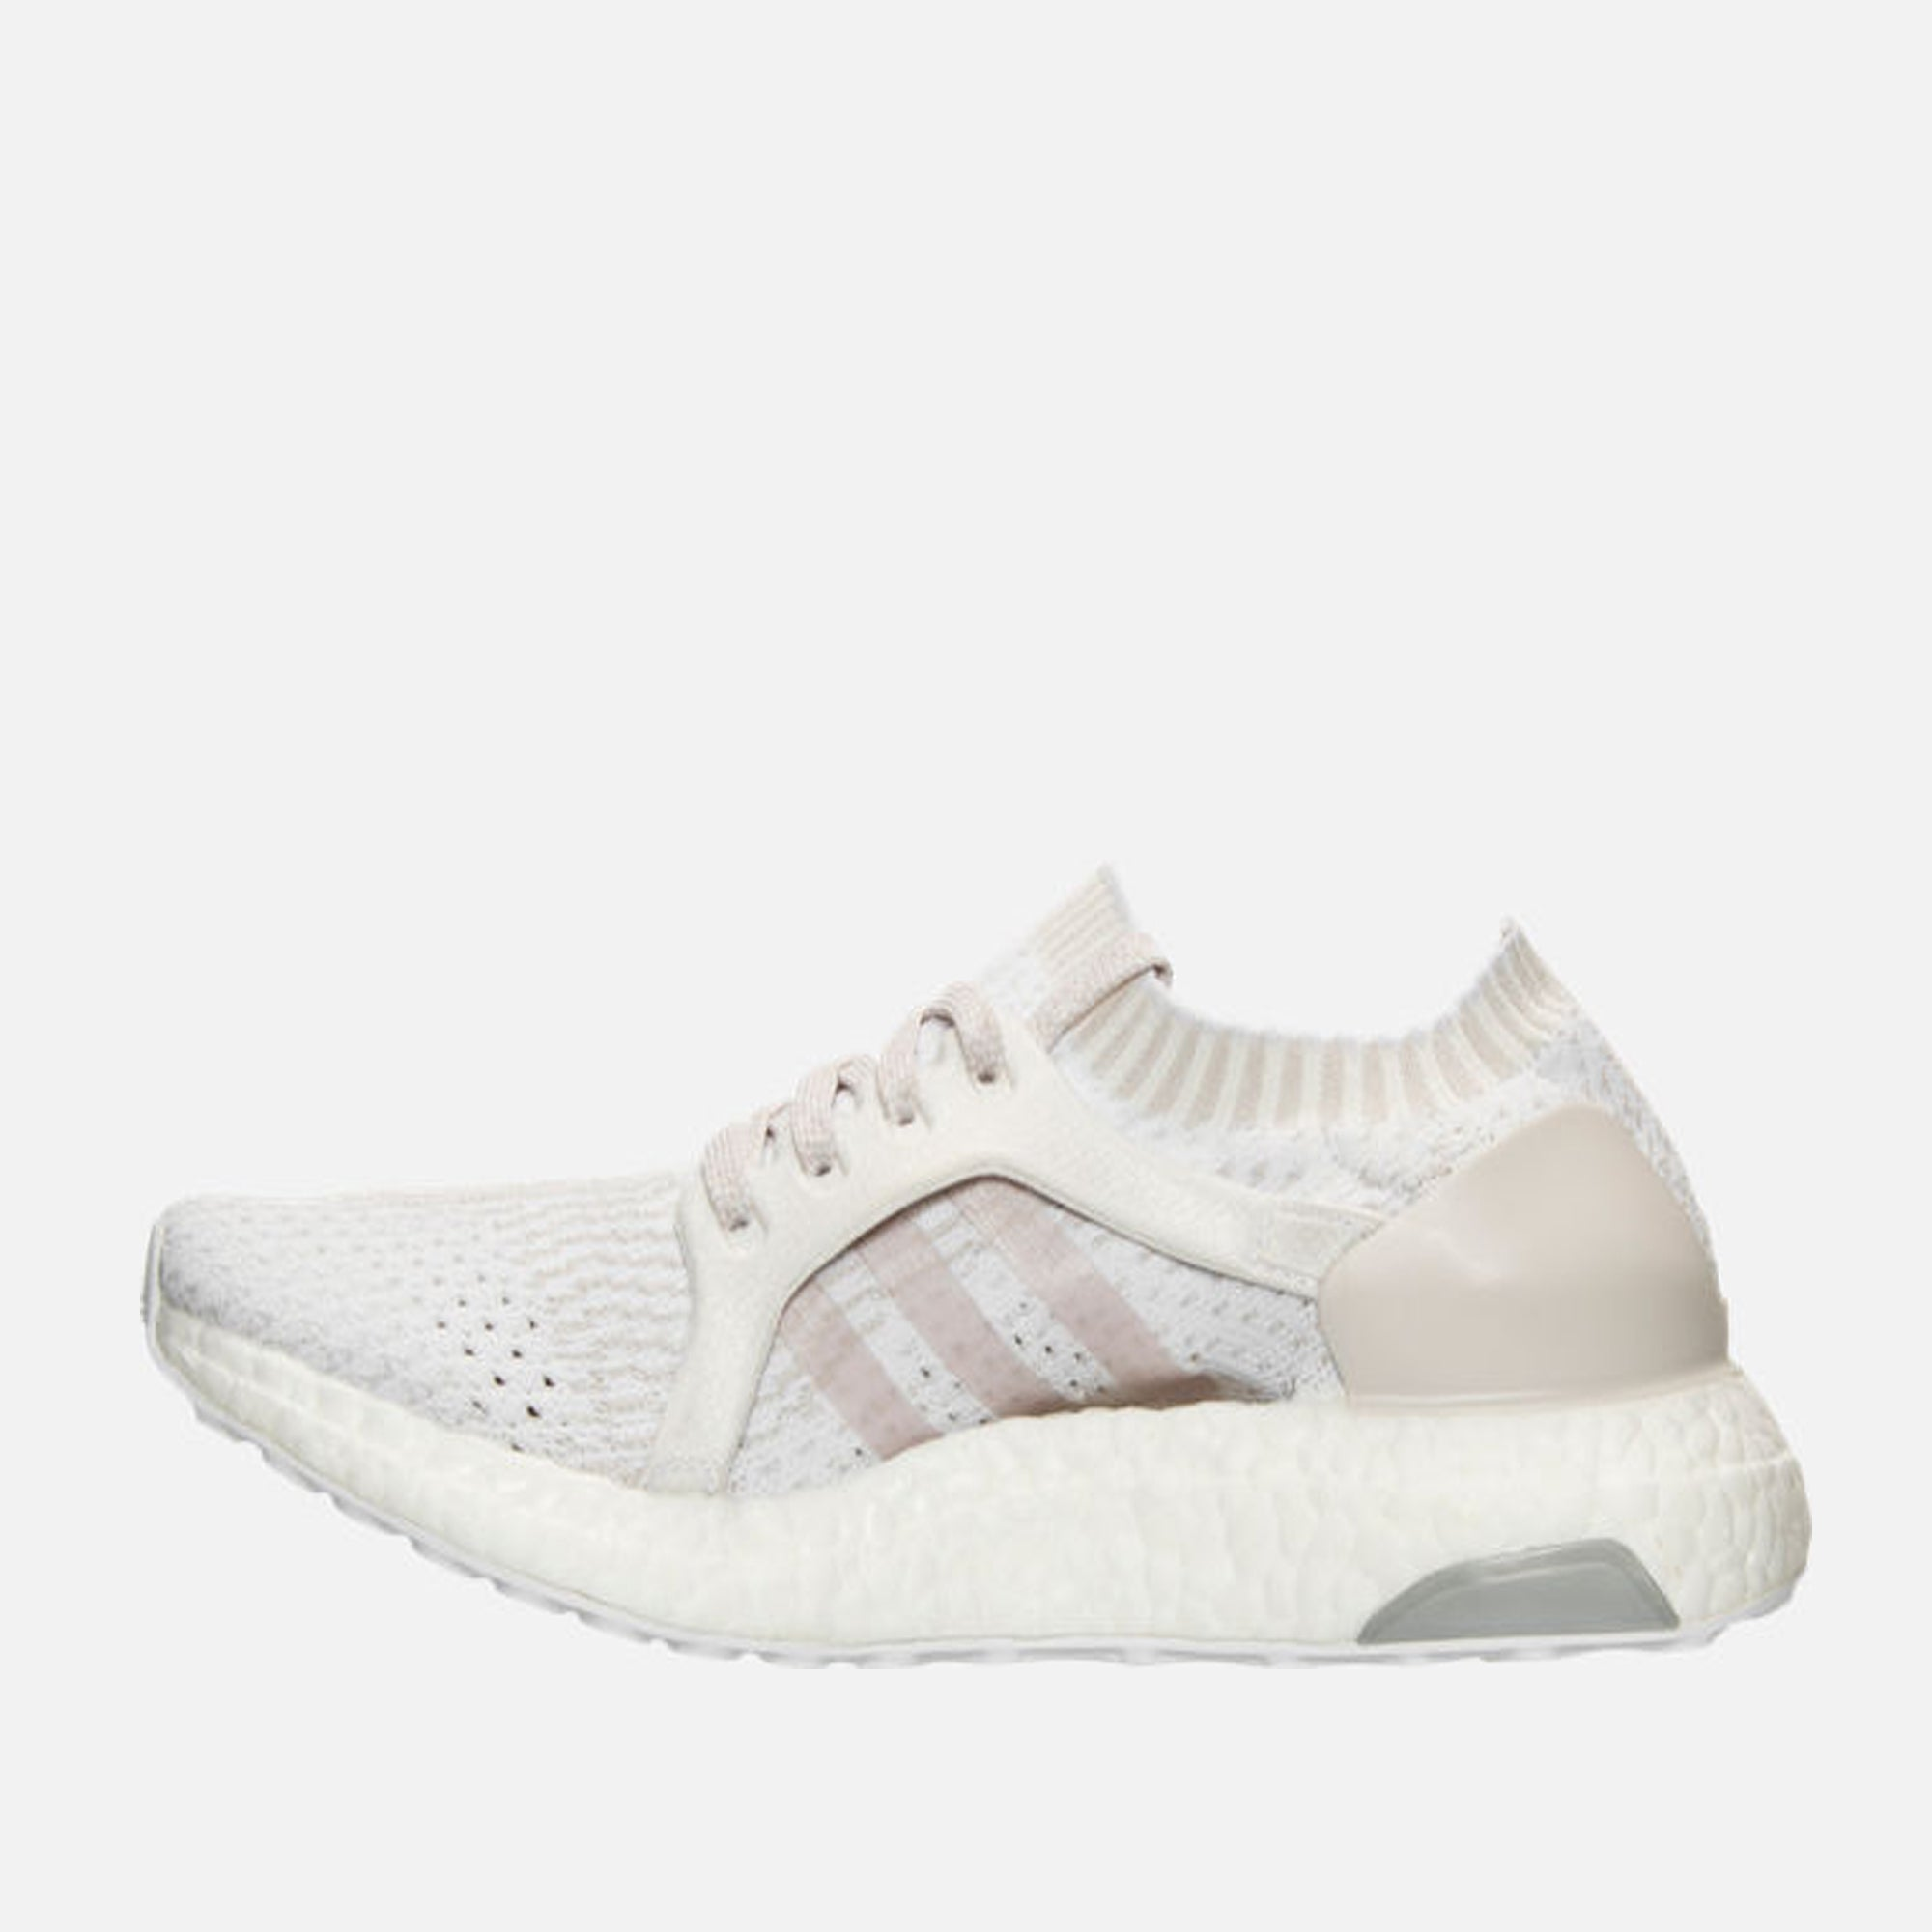 ca14c8f09c9d9 Women s Adidas Ultraboost X Running shoes Crystal White Pearl Grey White -